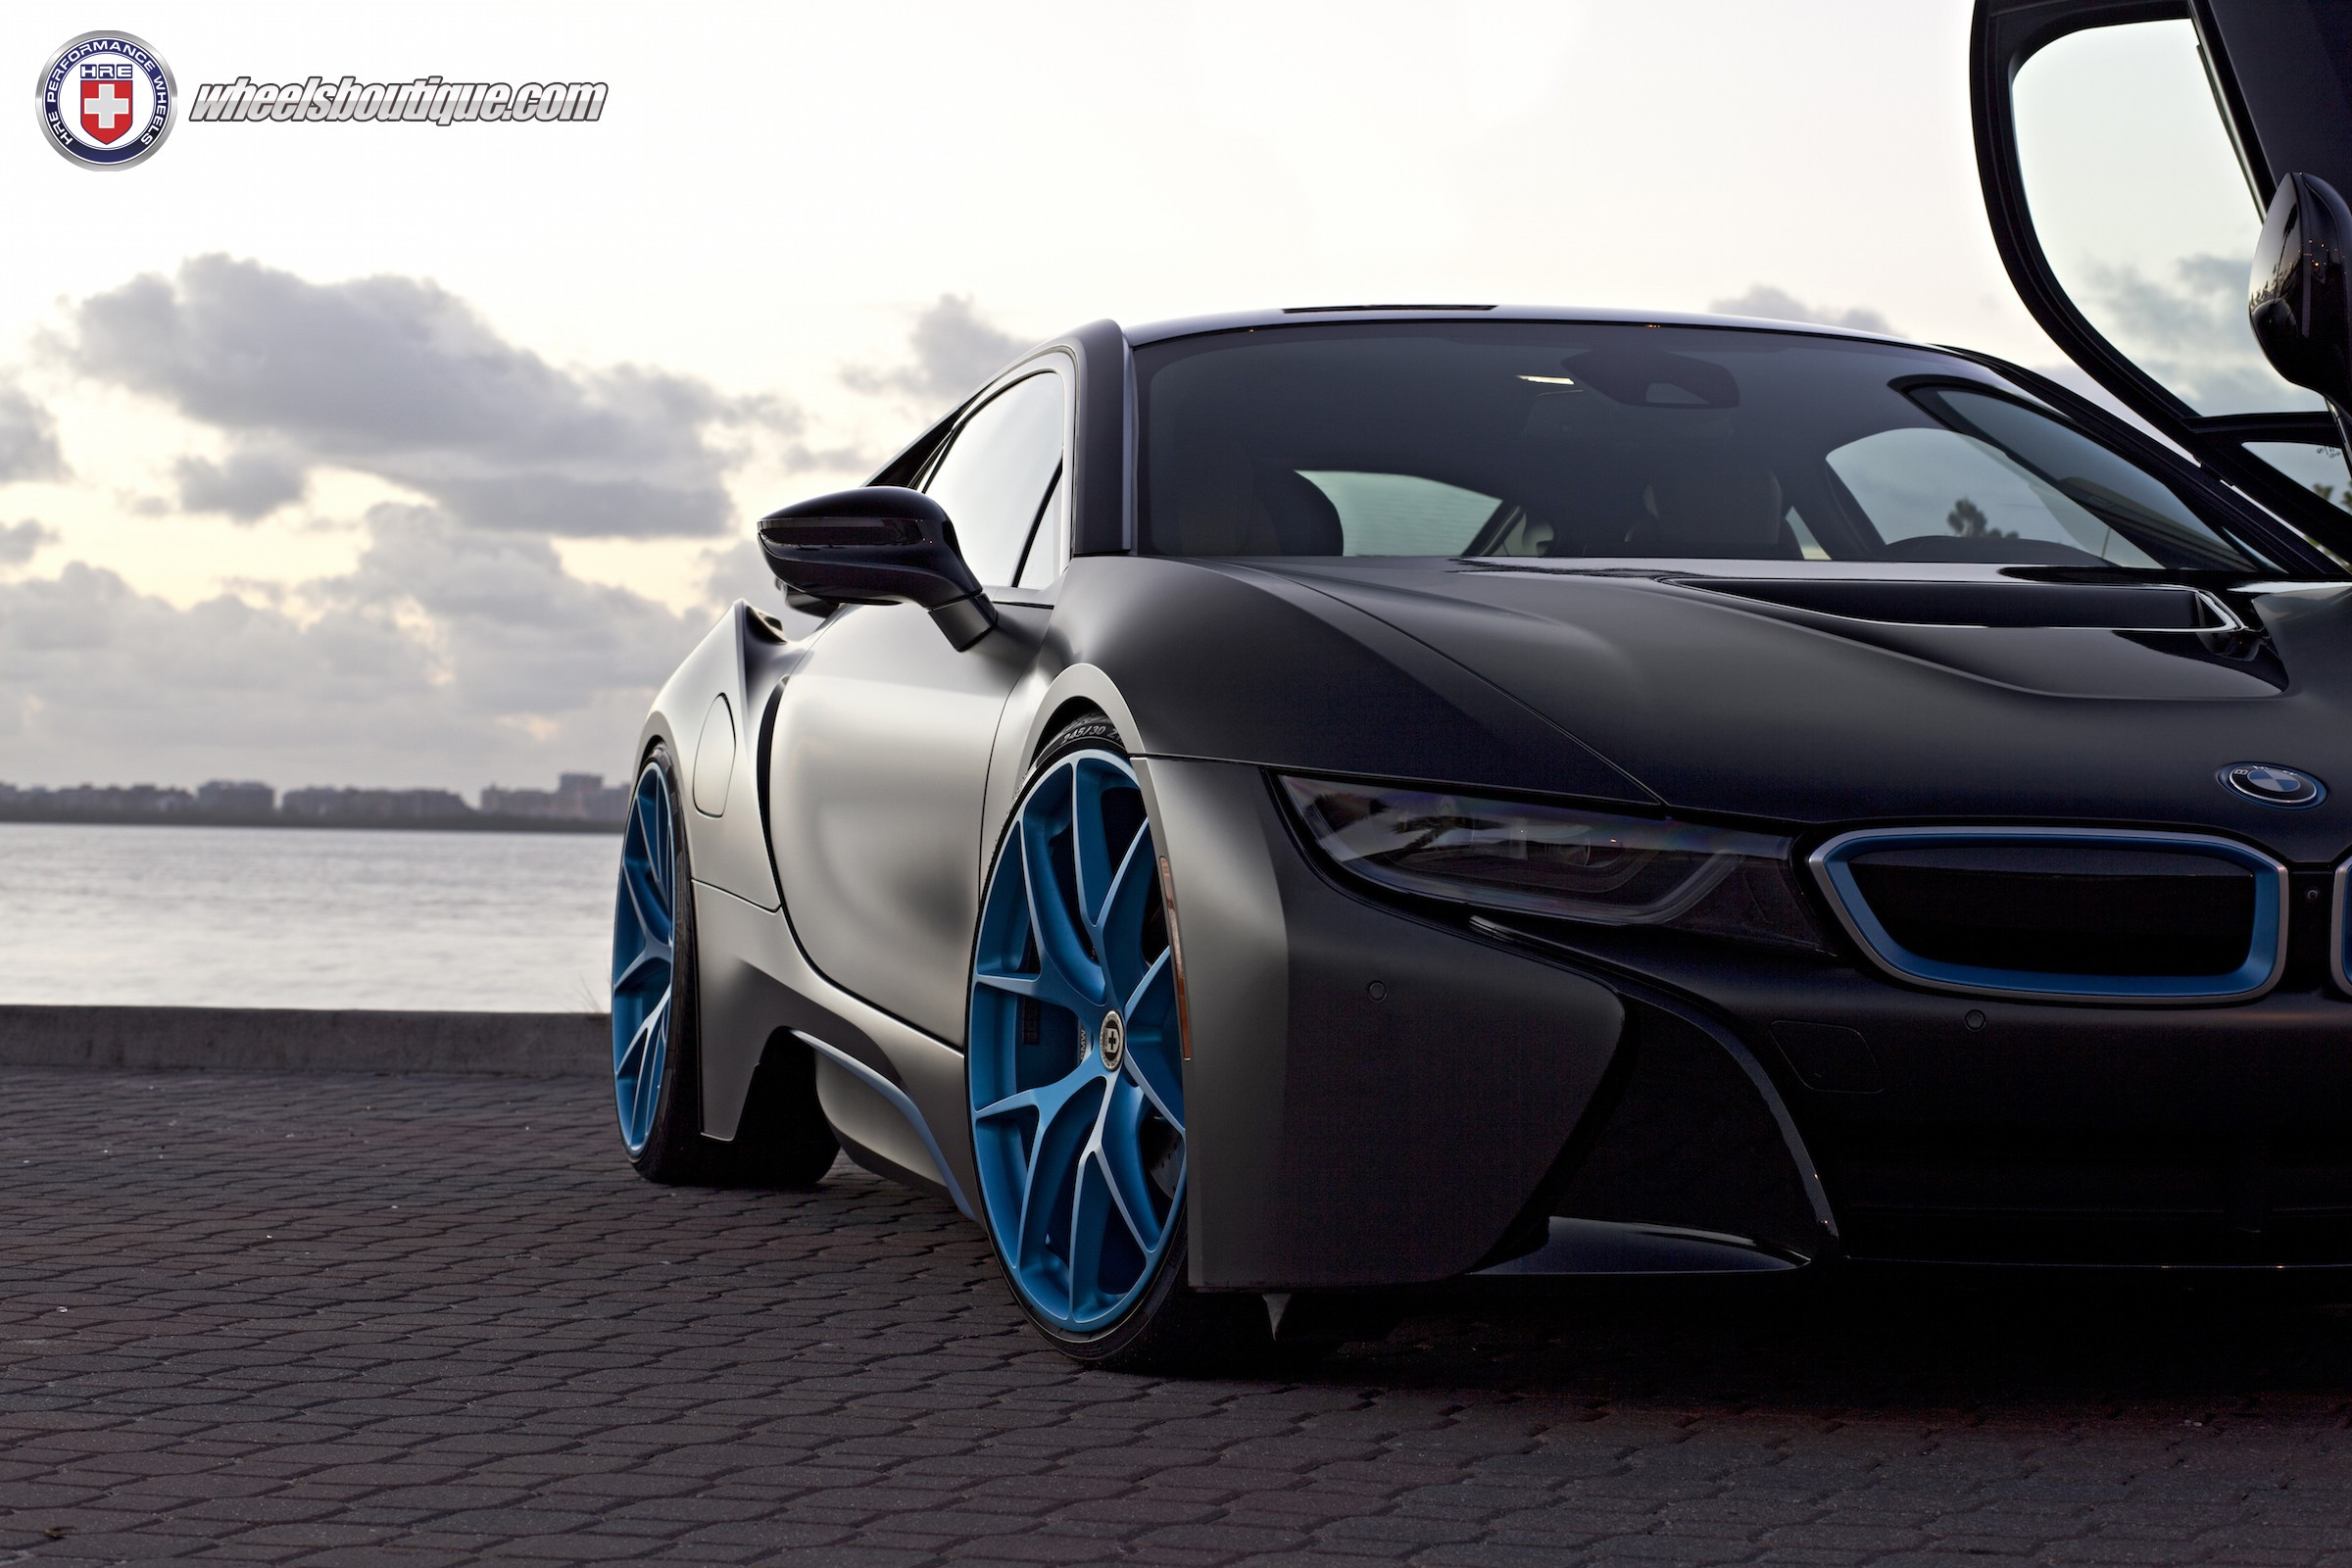 World Most Beautiful Cars Wallpaper In Photos 10 Of The Most